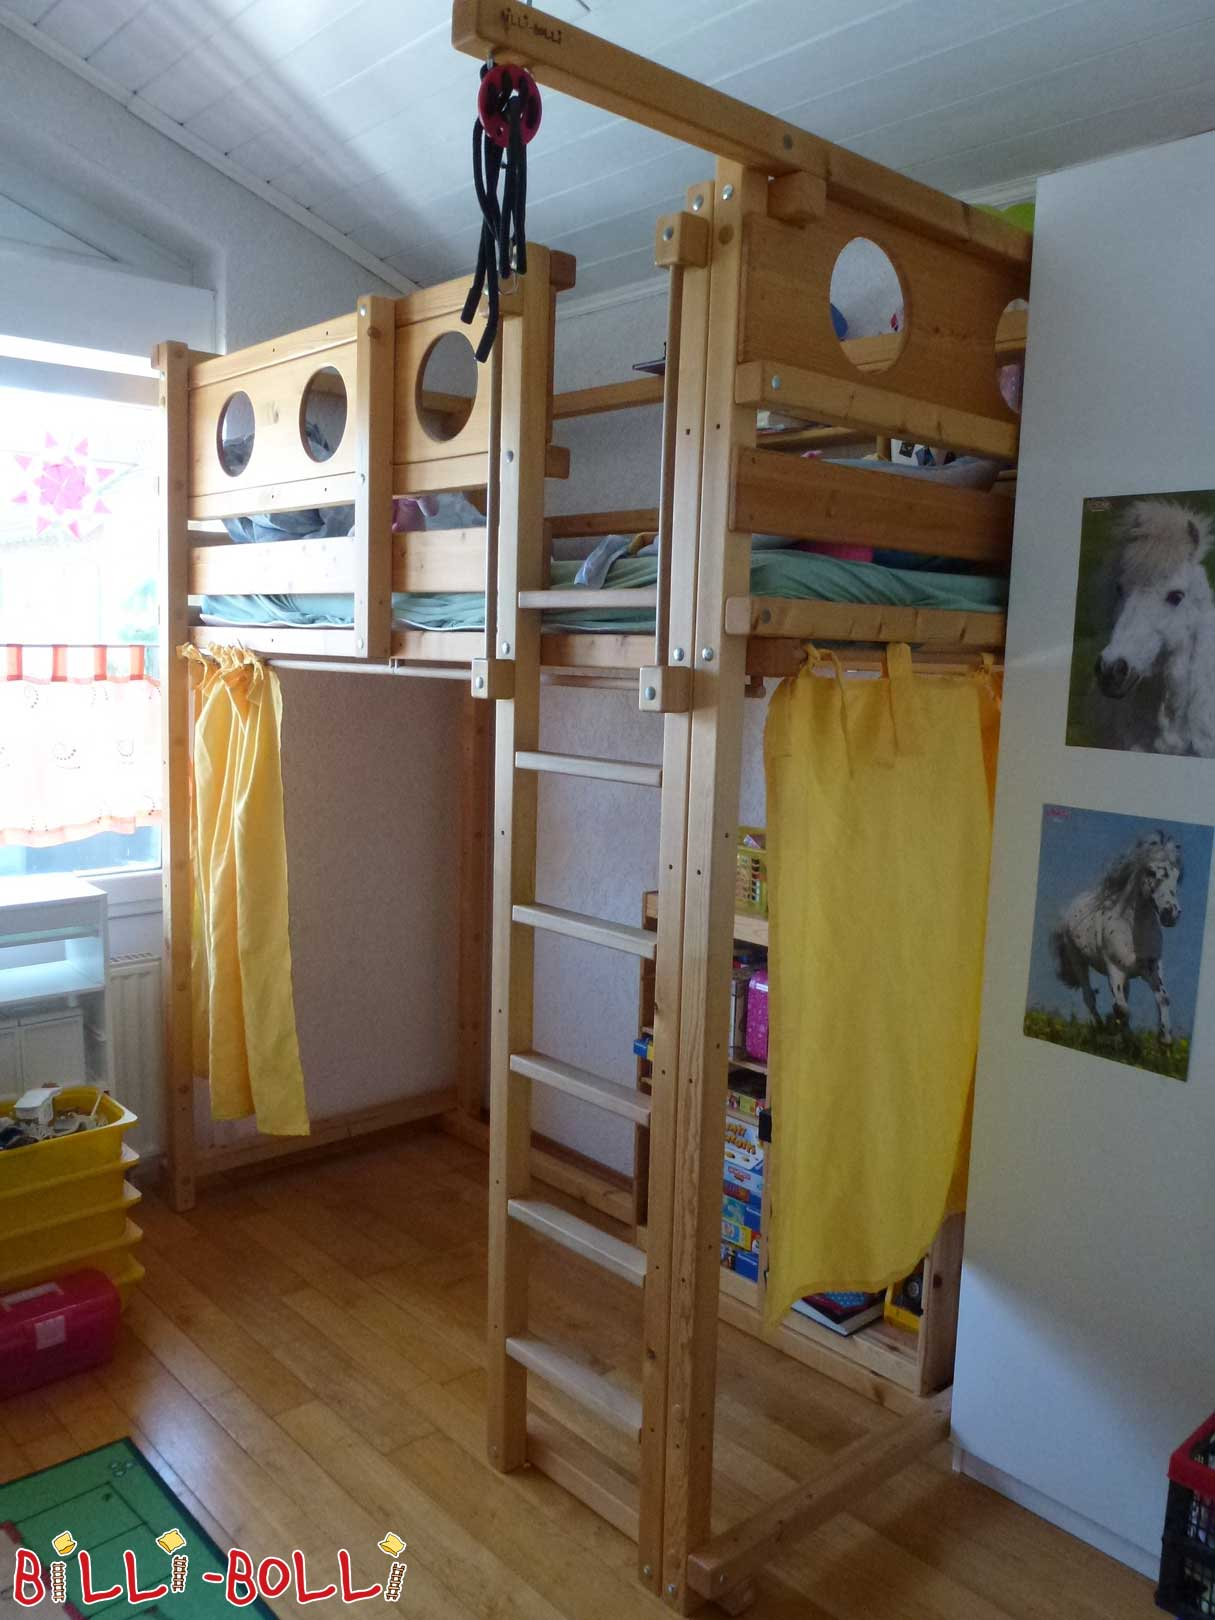 Loft bed growing with 90 x 200 cm, spruce oil waxed (second hand loft bed)